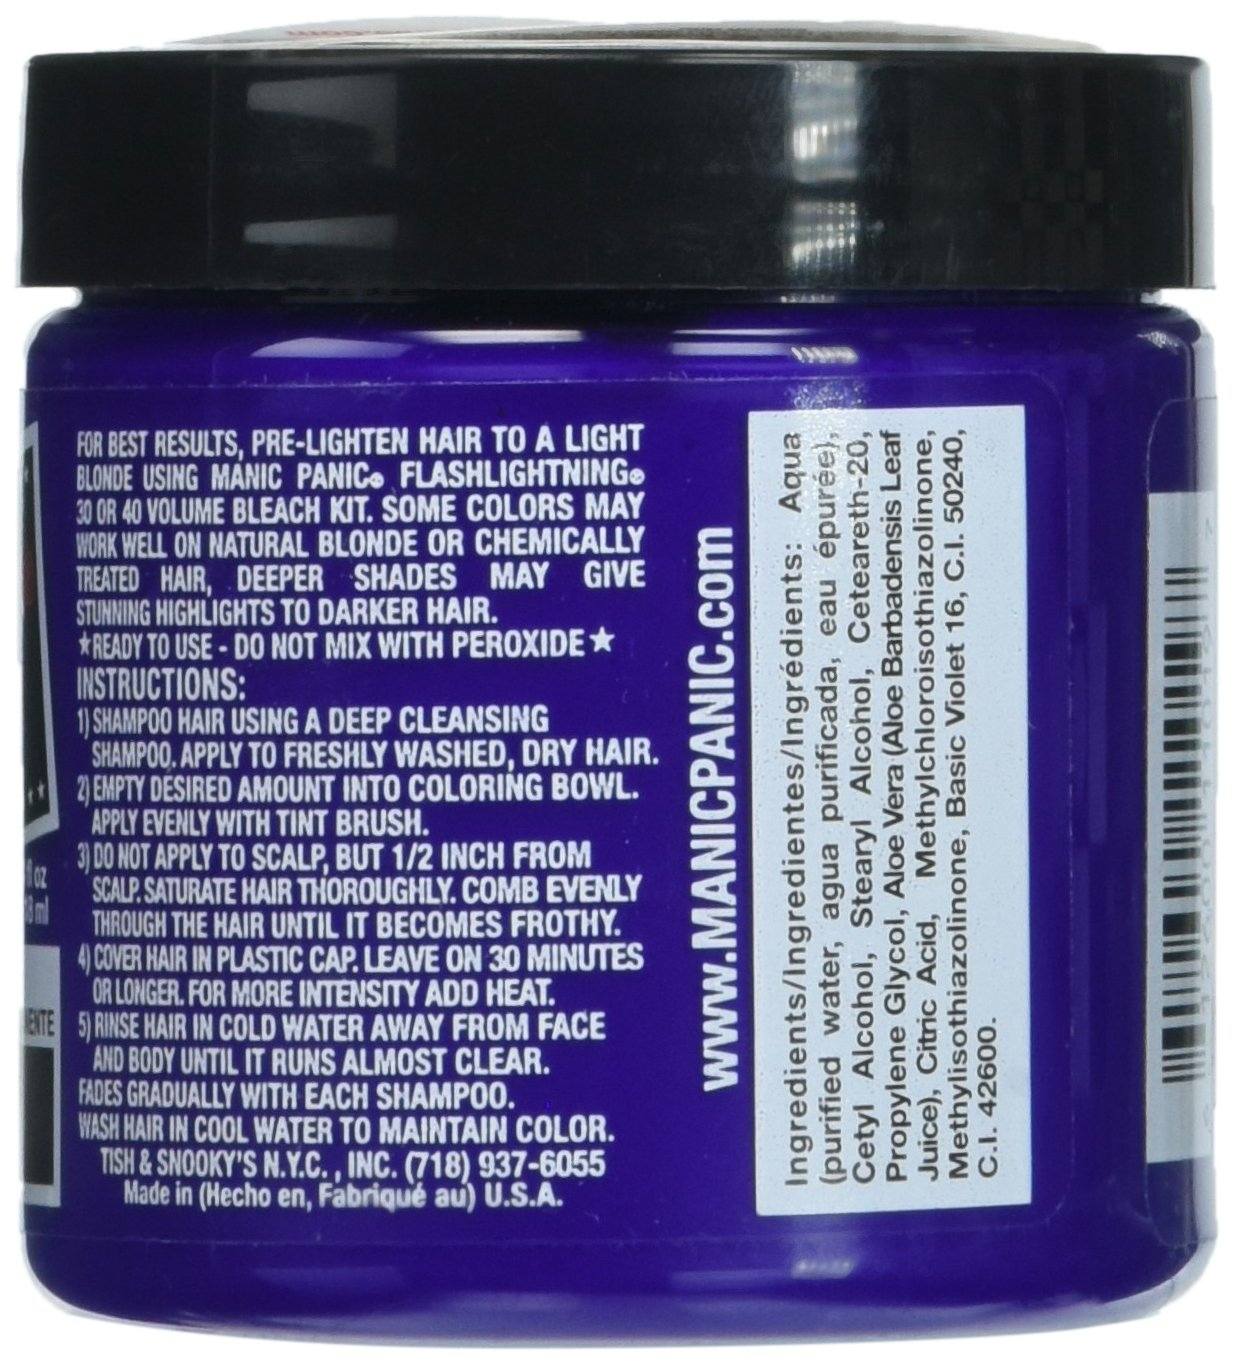 Manic Panic Semi-Permanent Haircolor Ultra Violet 4 Ounce Jar (118ml) (2 Pack)